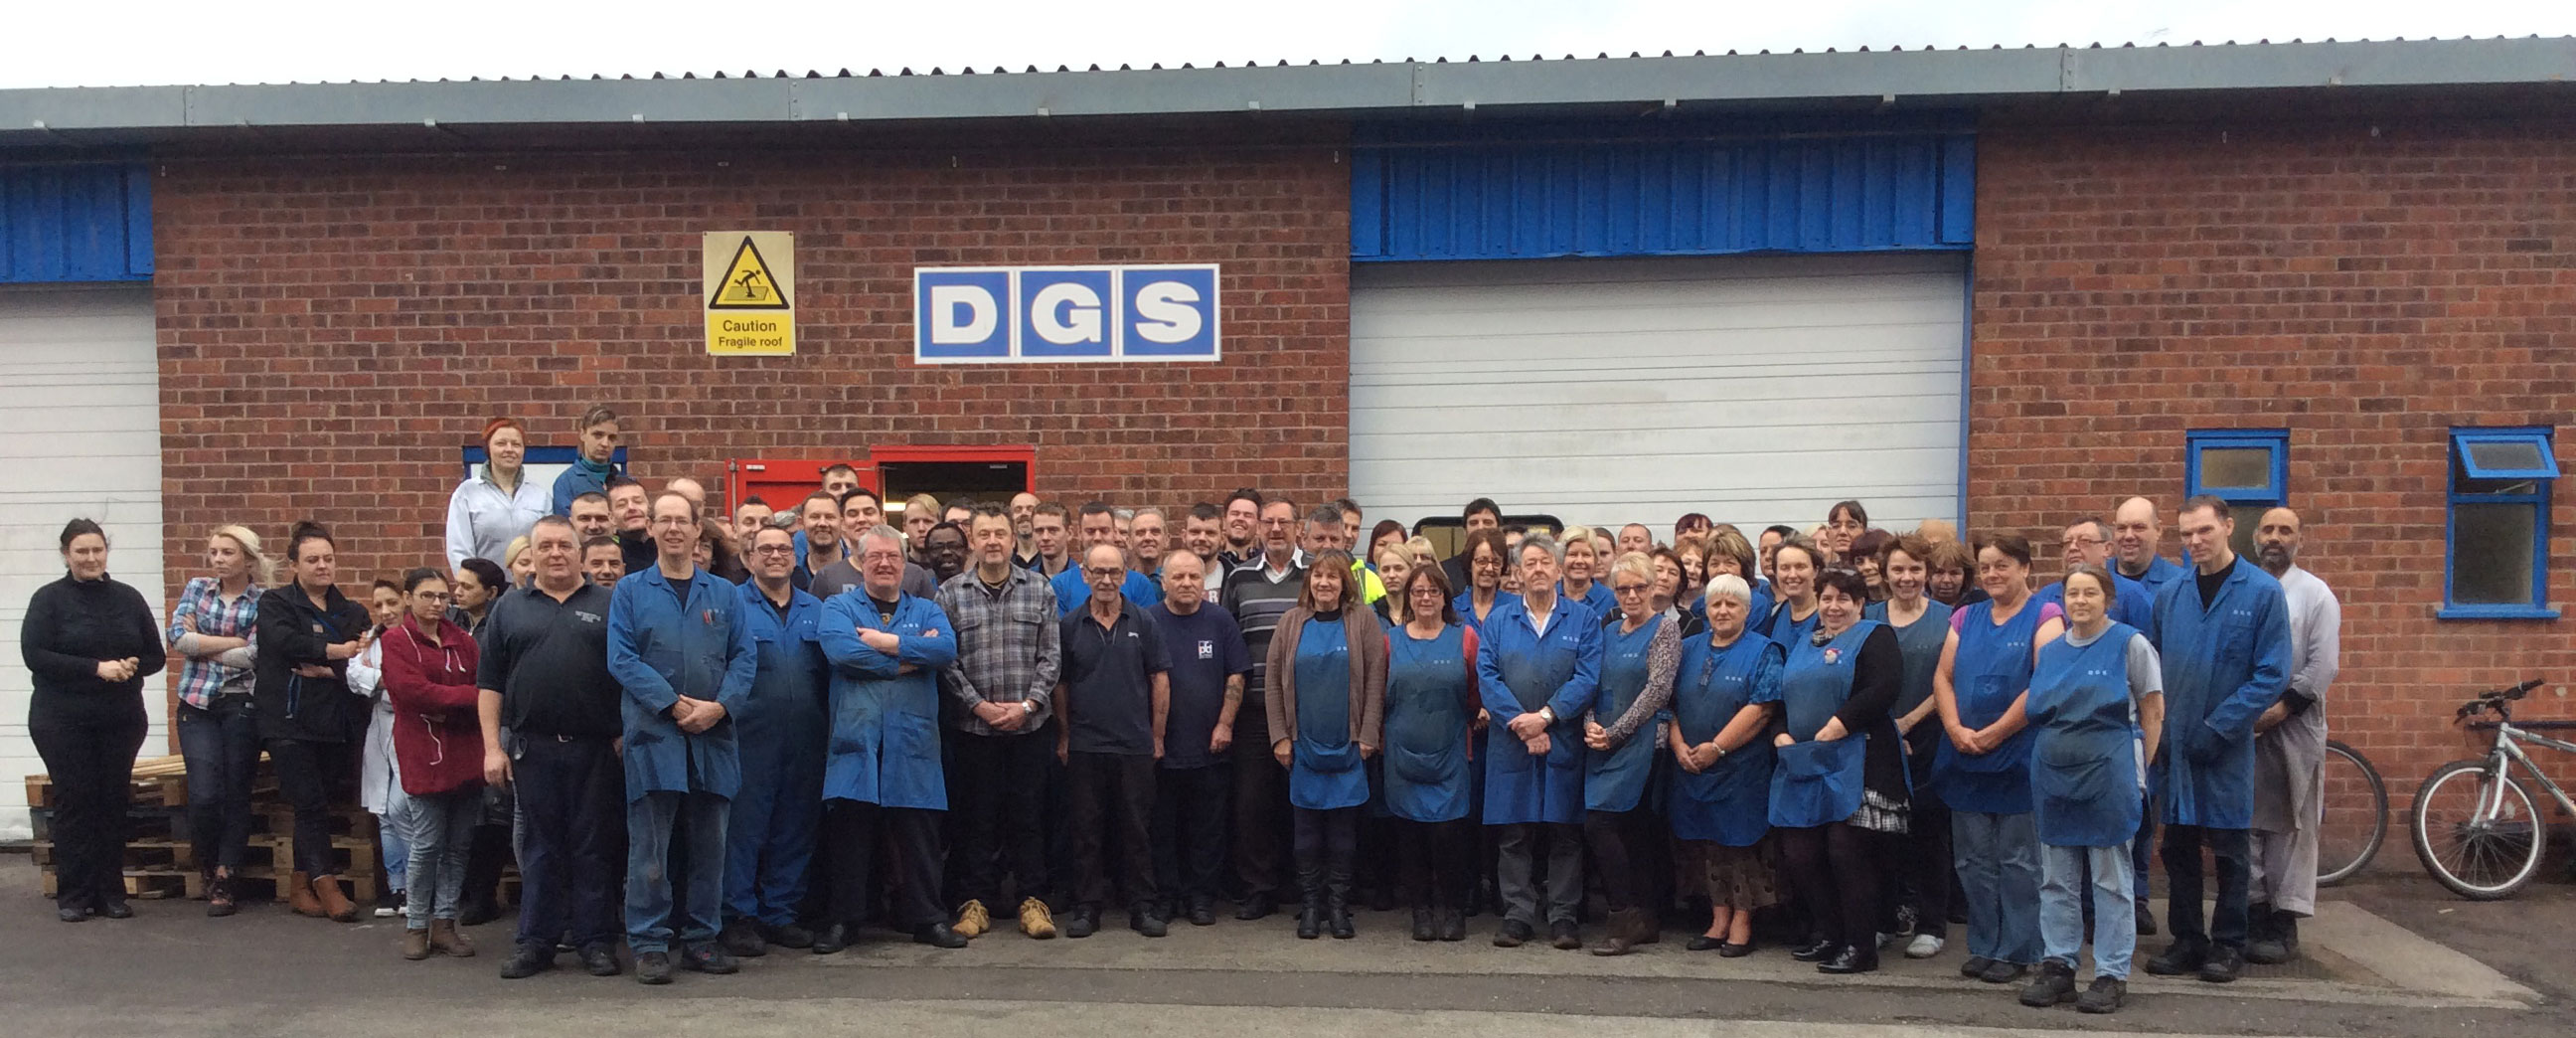 Uk Manufactured Friction Stays Dgs Group Plc